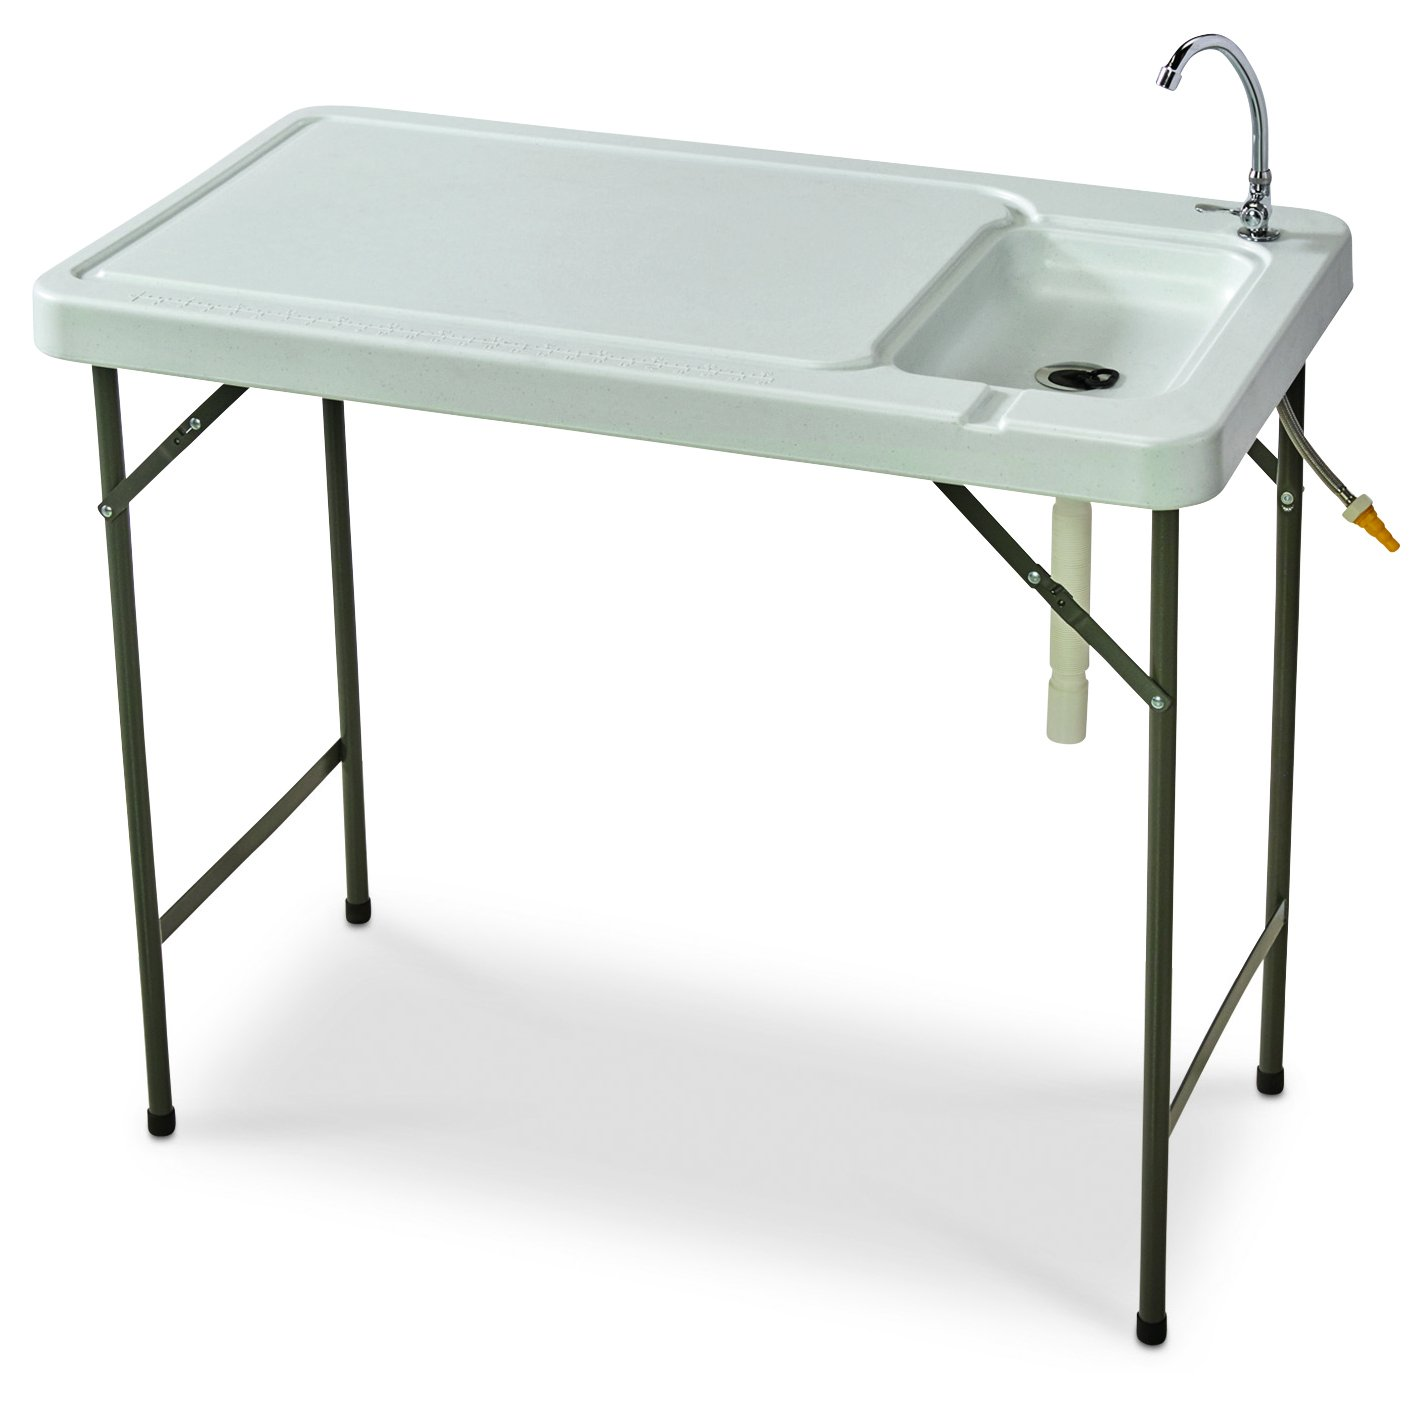 Amazon.com : Guide Gear Folding Fish/Game Cleaning Table with Sink ...